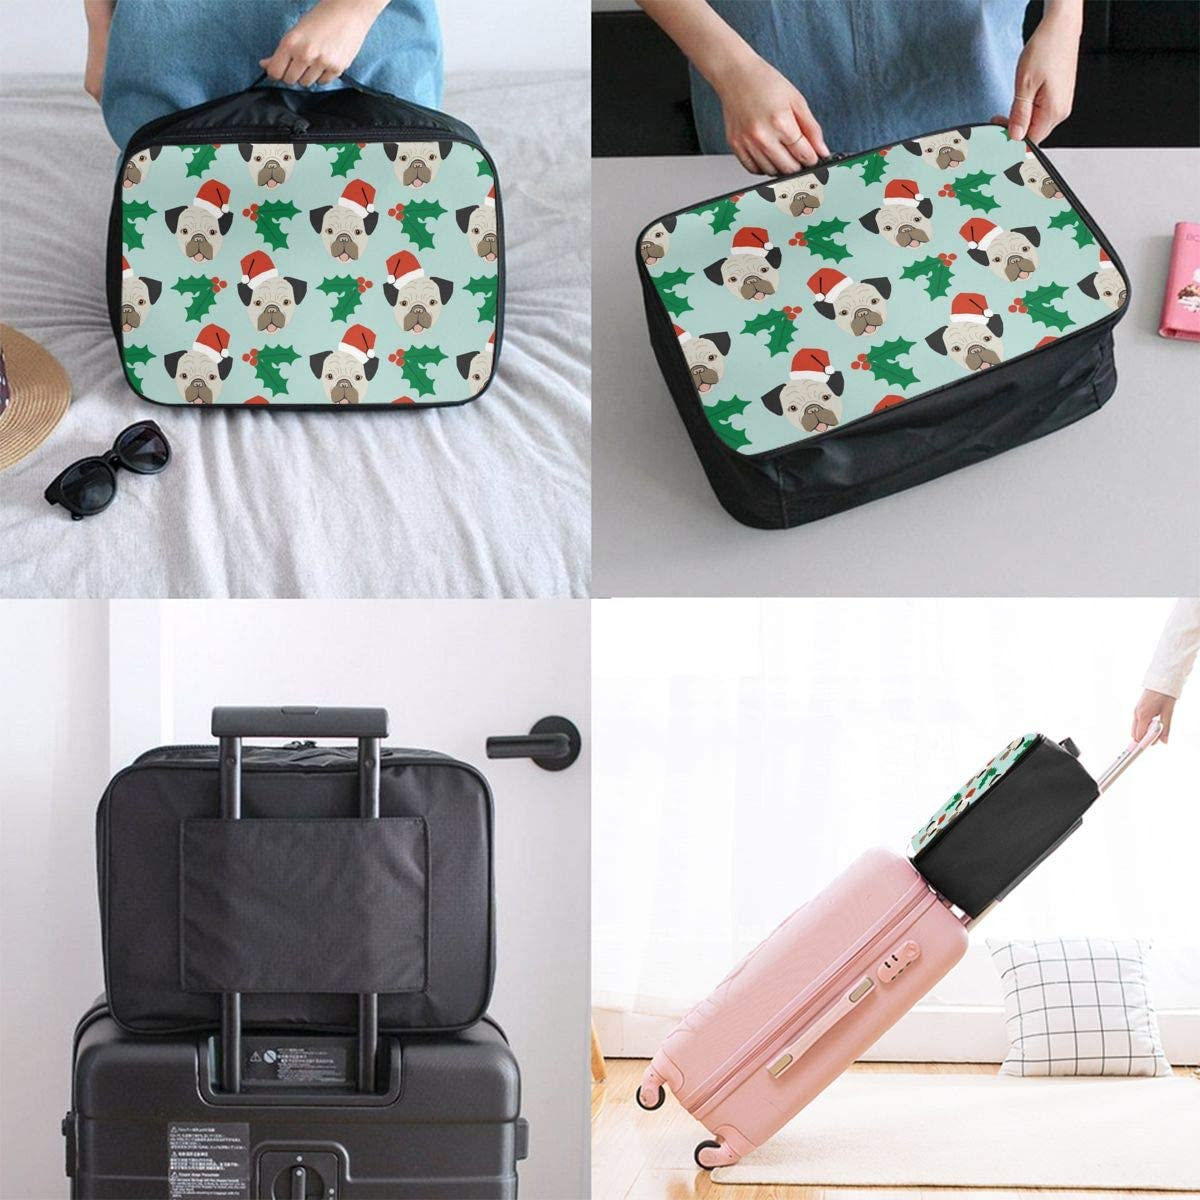 Camper Flamingo Travel Carry-on Luggage Weekender Bag Overnight Tote Flight Duffel In Trolley Handle